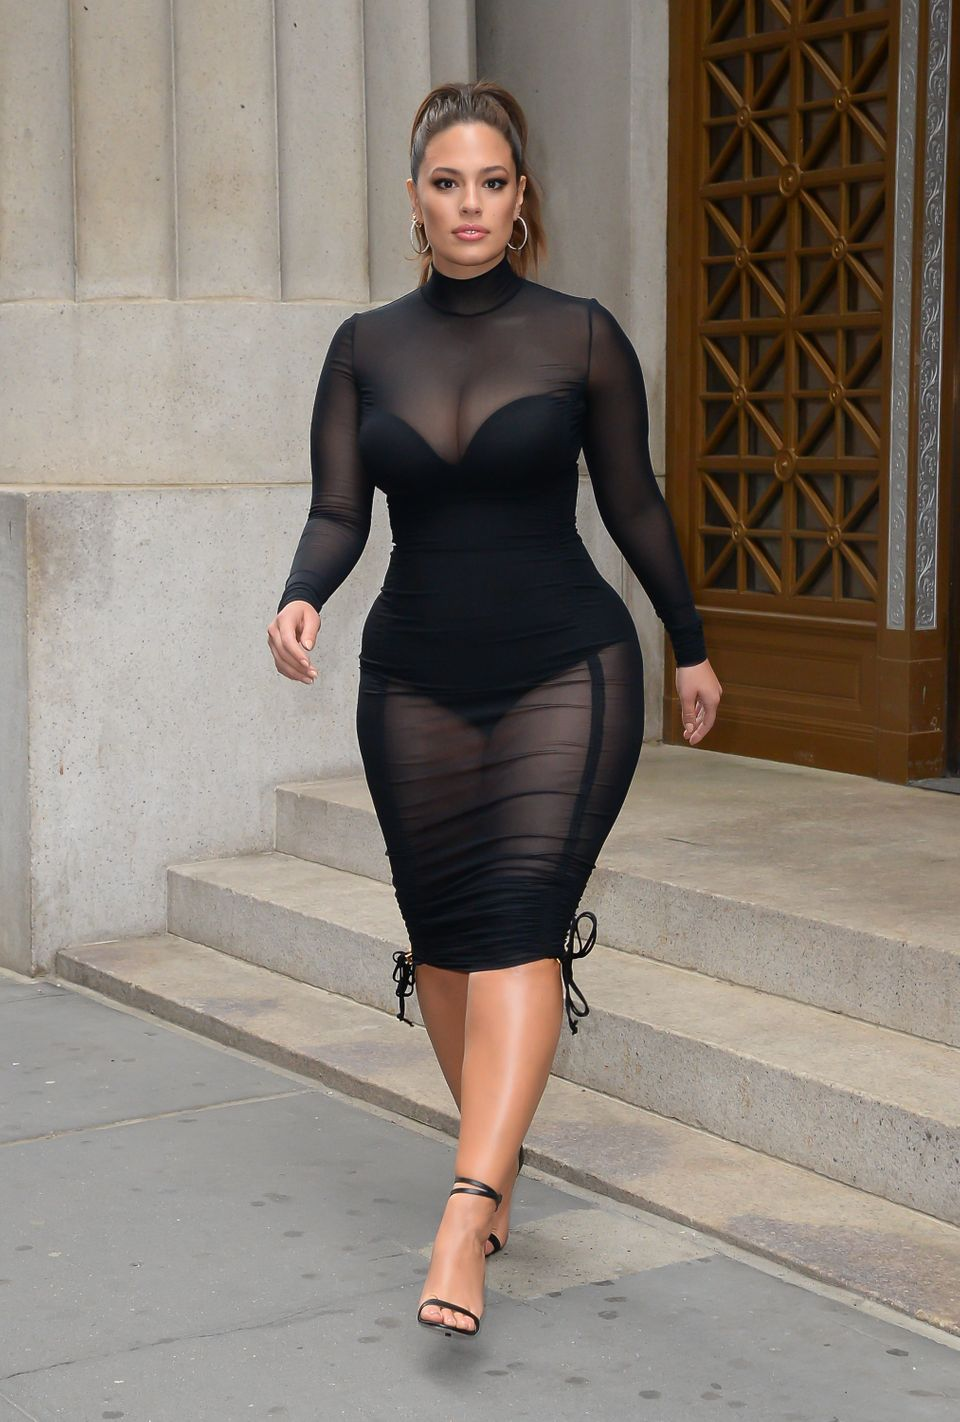 ashley graham has a powerful message after getting dumped